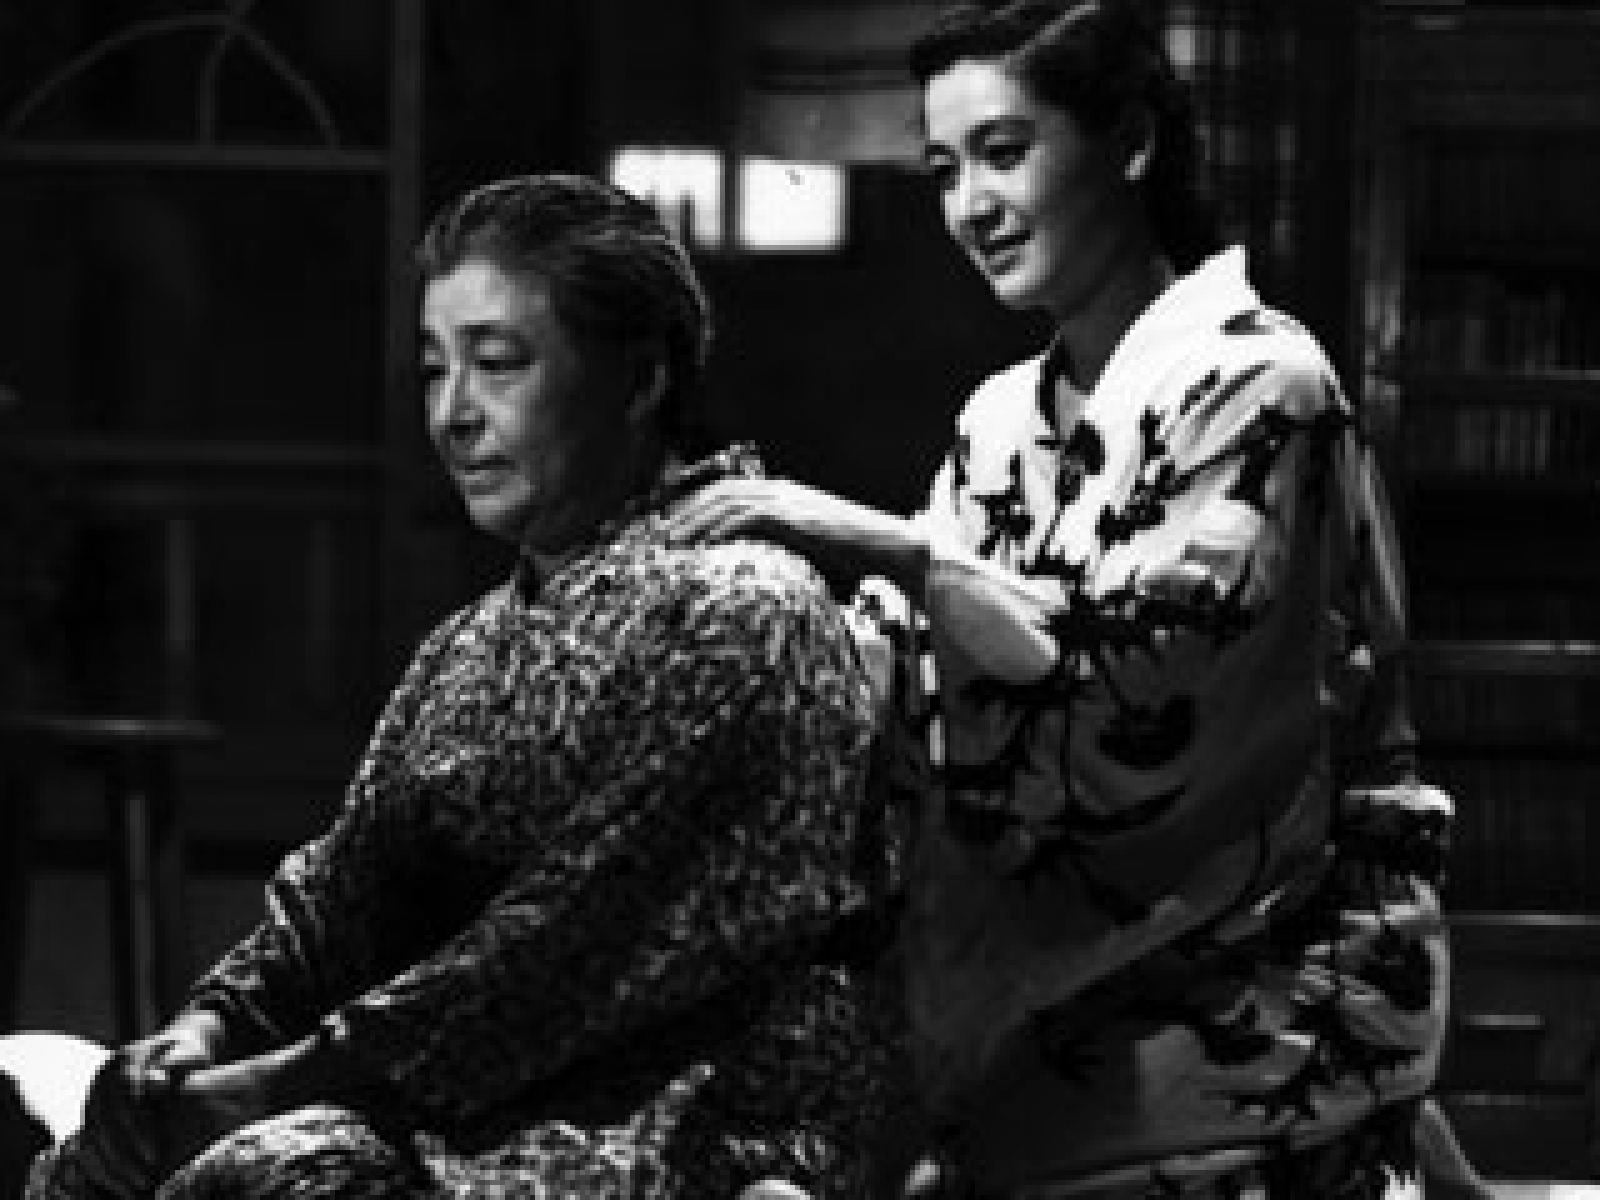 Main image for event titled TOKYO STORY